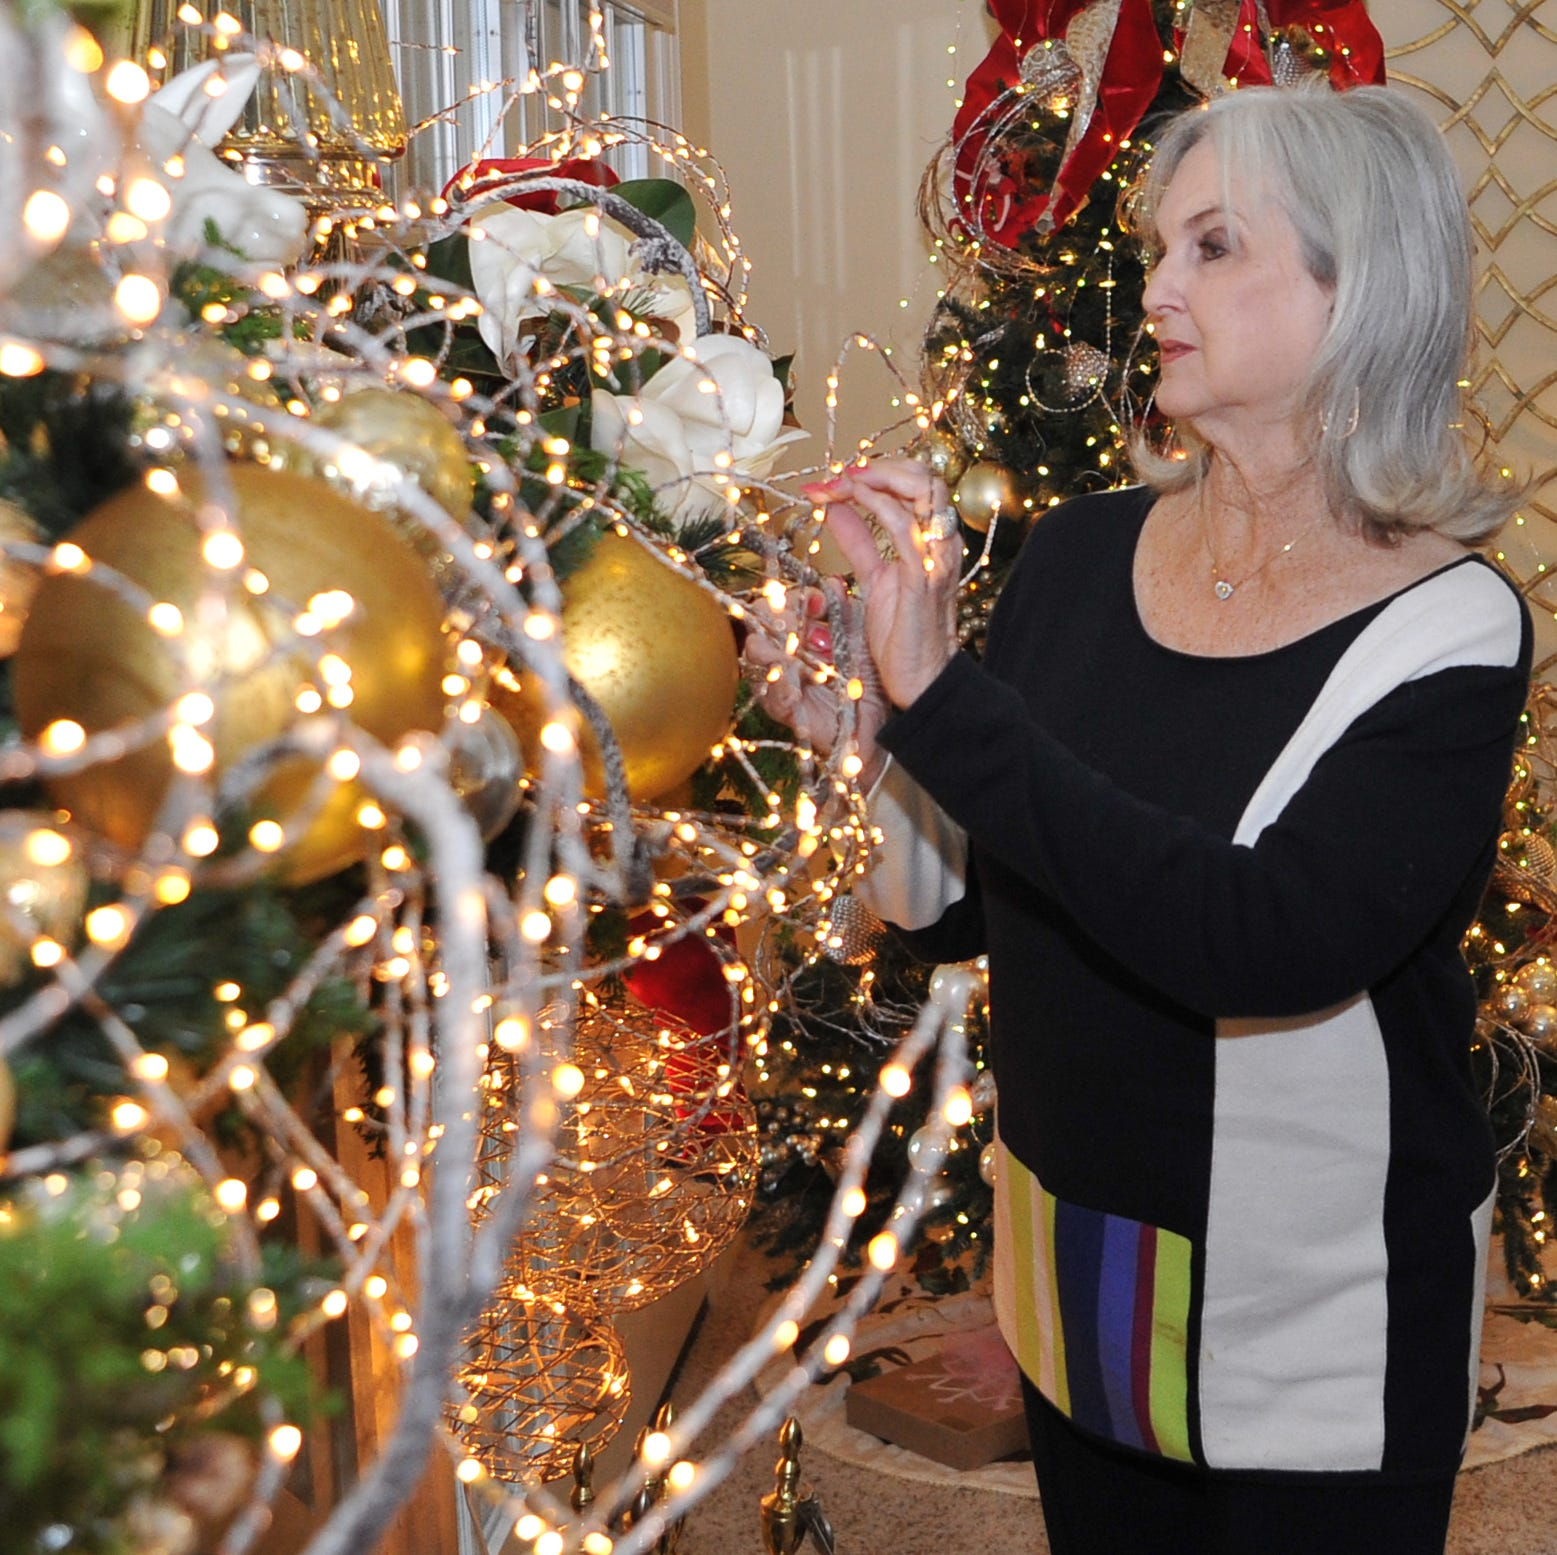 Woman's Forum Christmas Tour of Homes invites you into festive locations